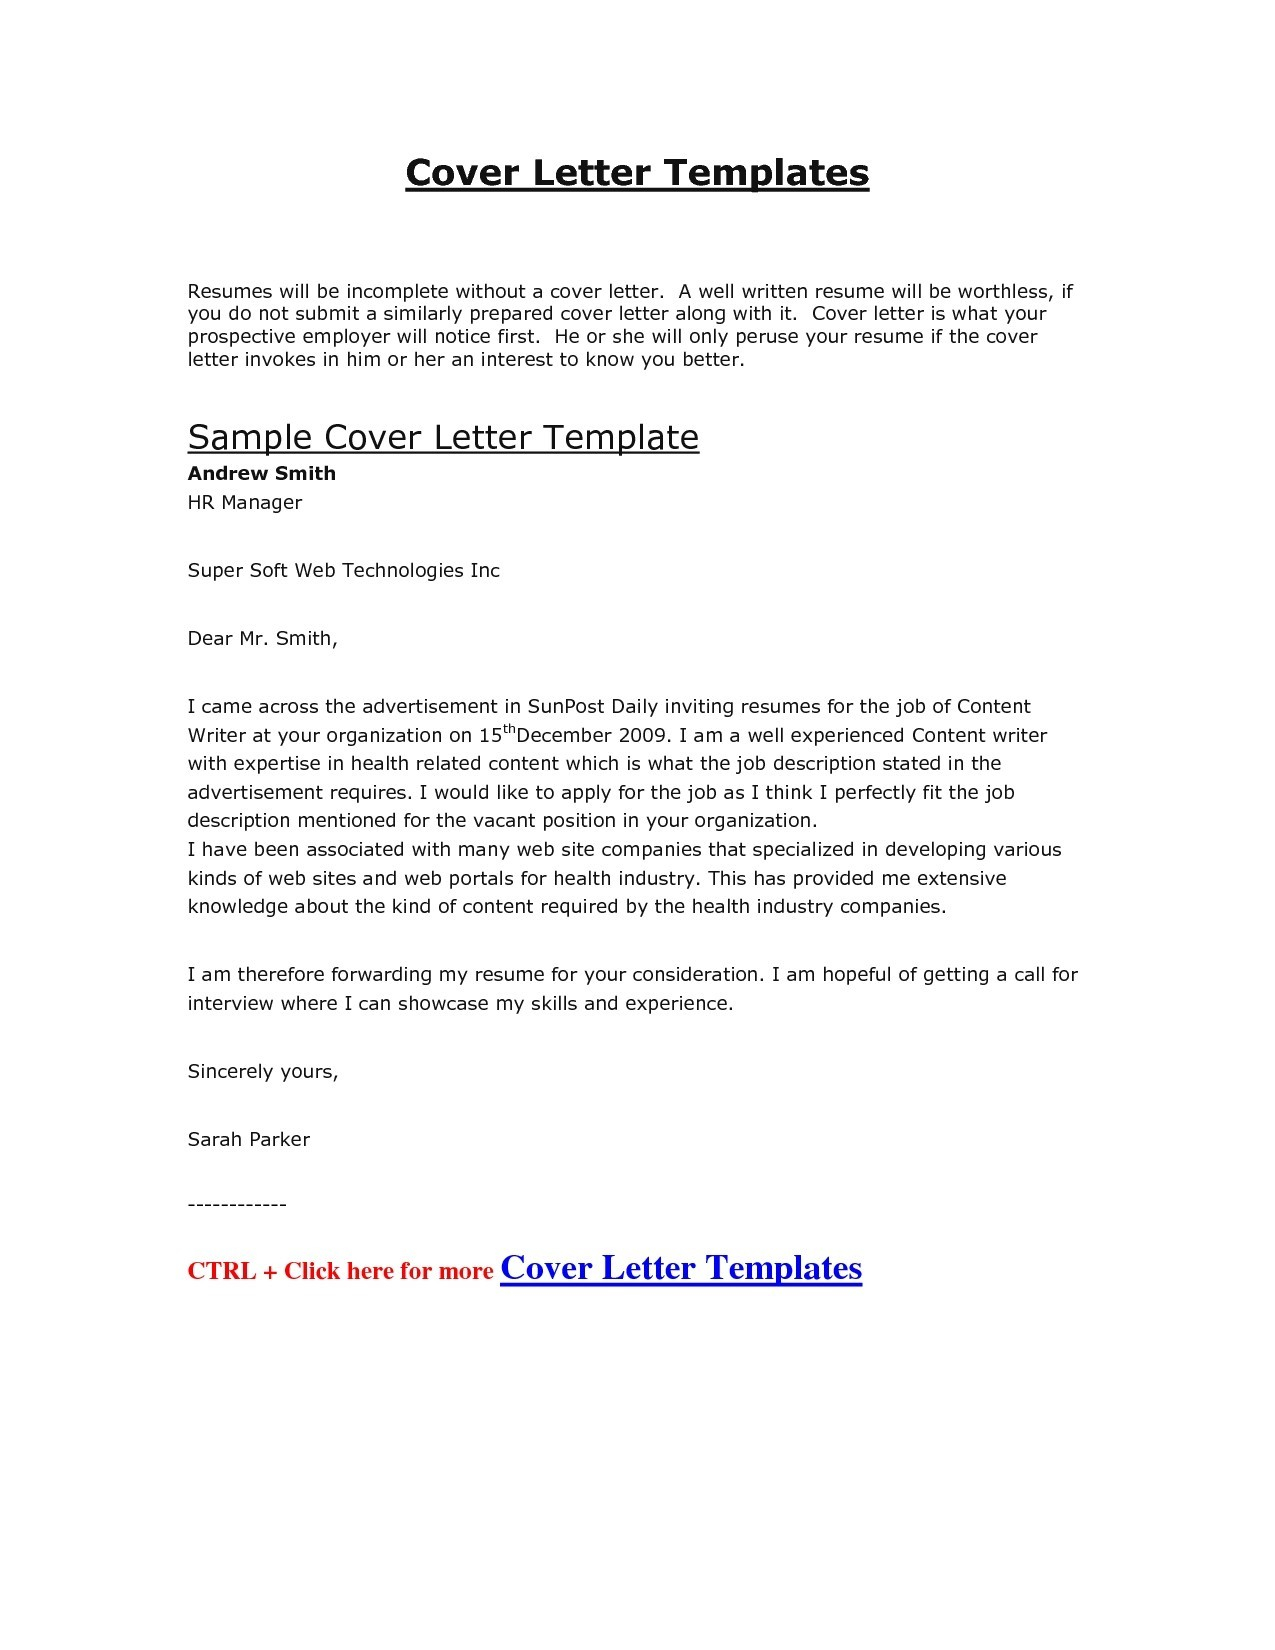 Proper Cover Letter Template - Job Application Letter format Template Copy Cover Letter Template Hr